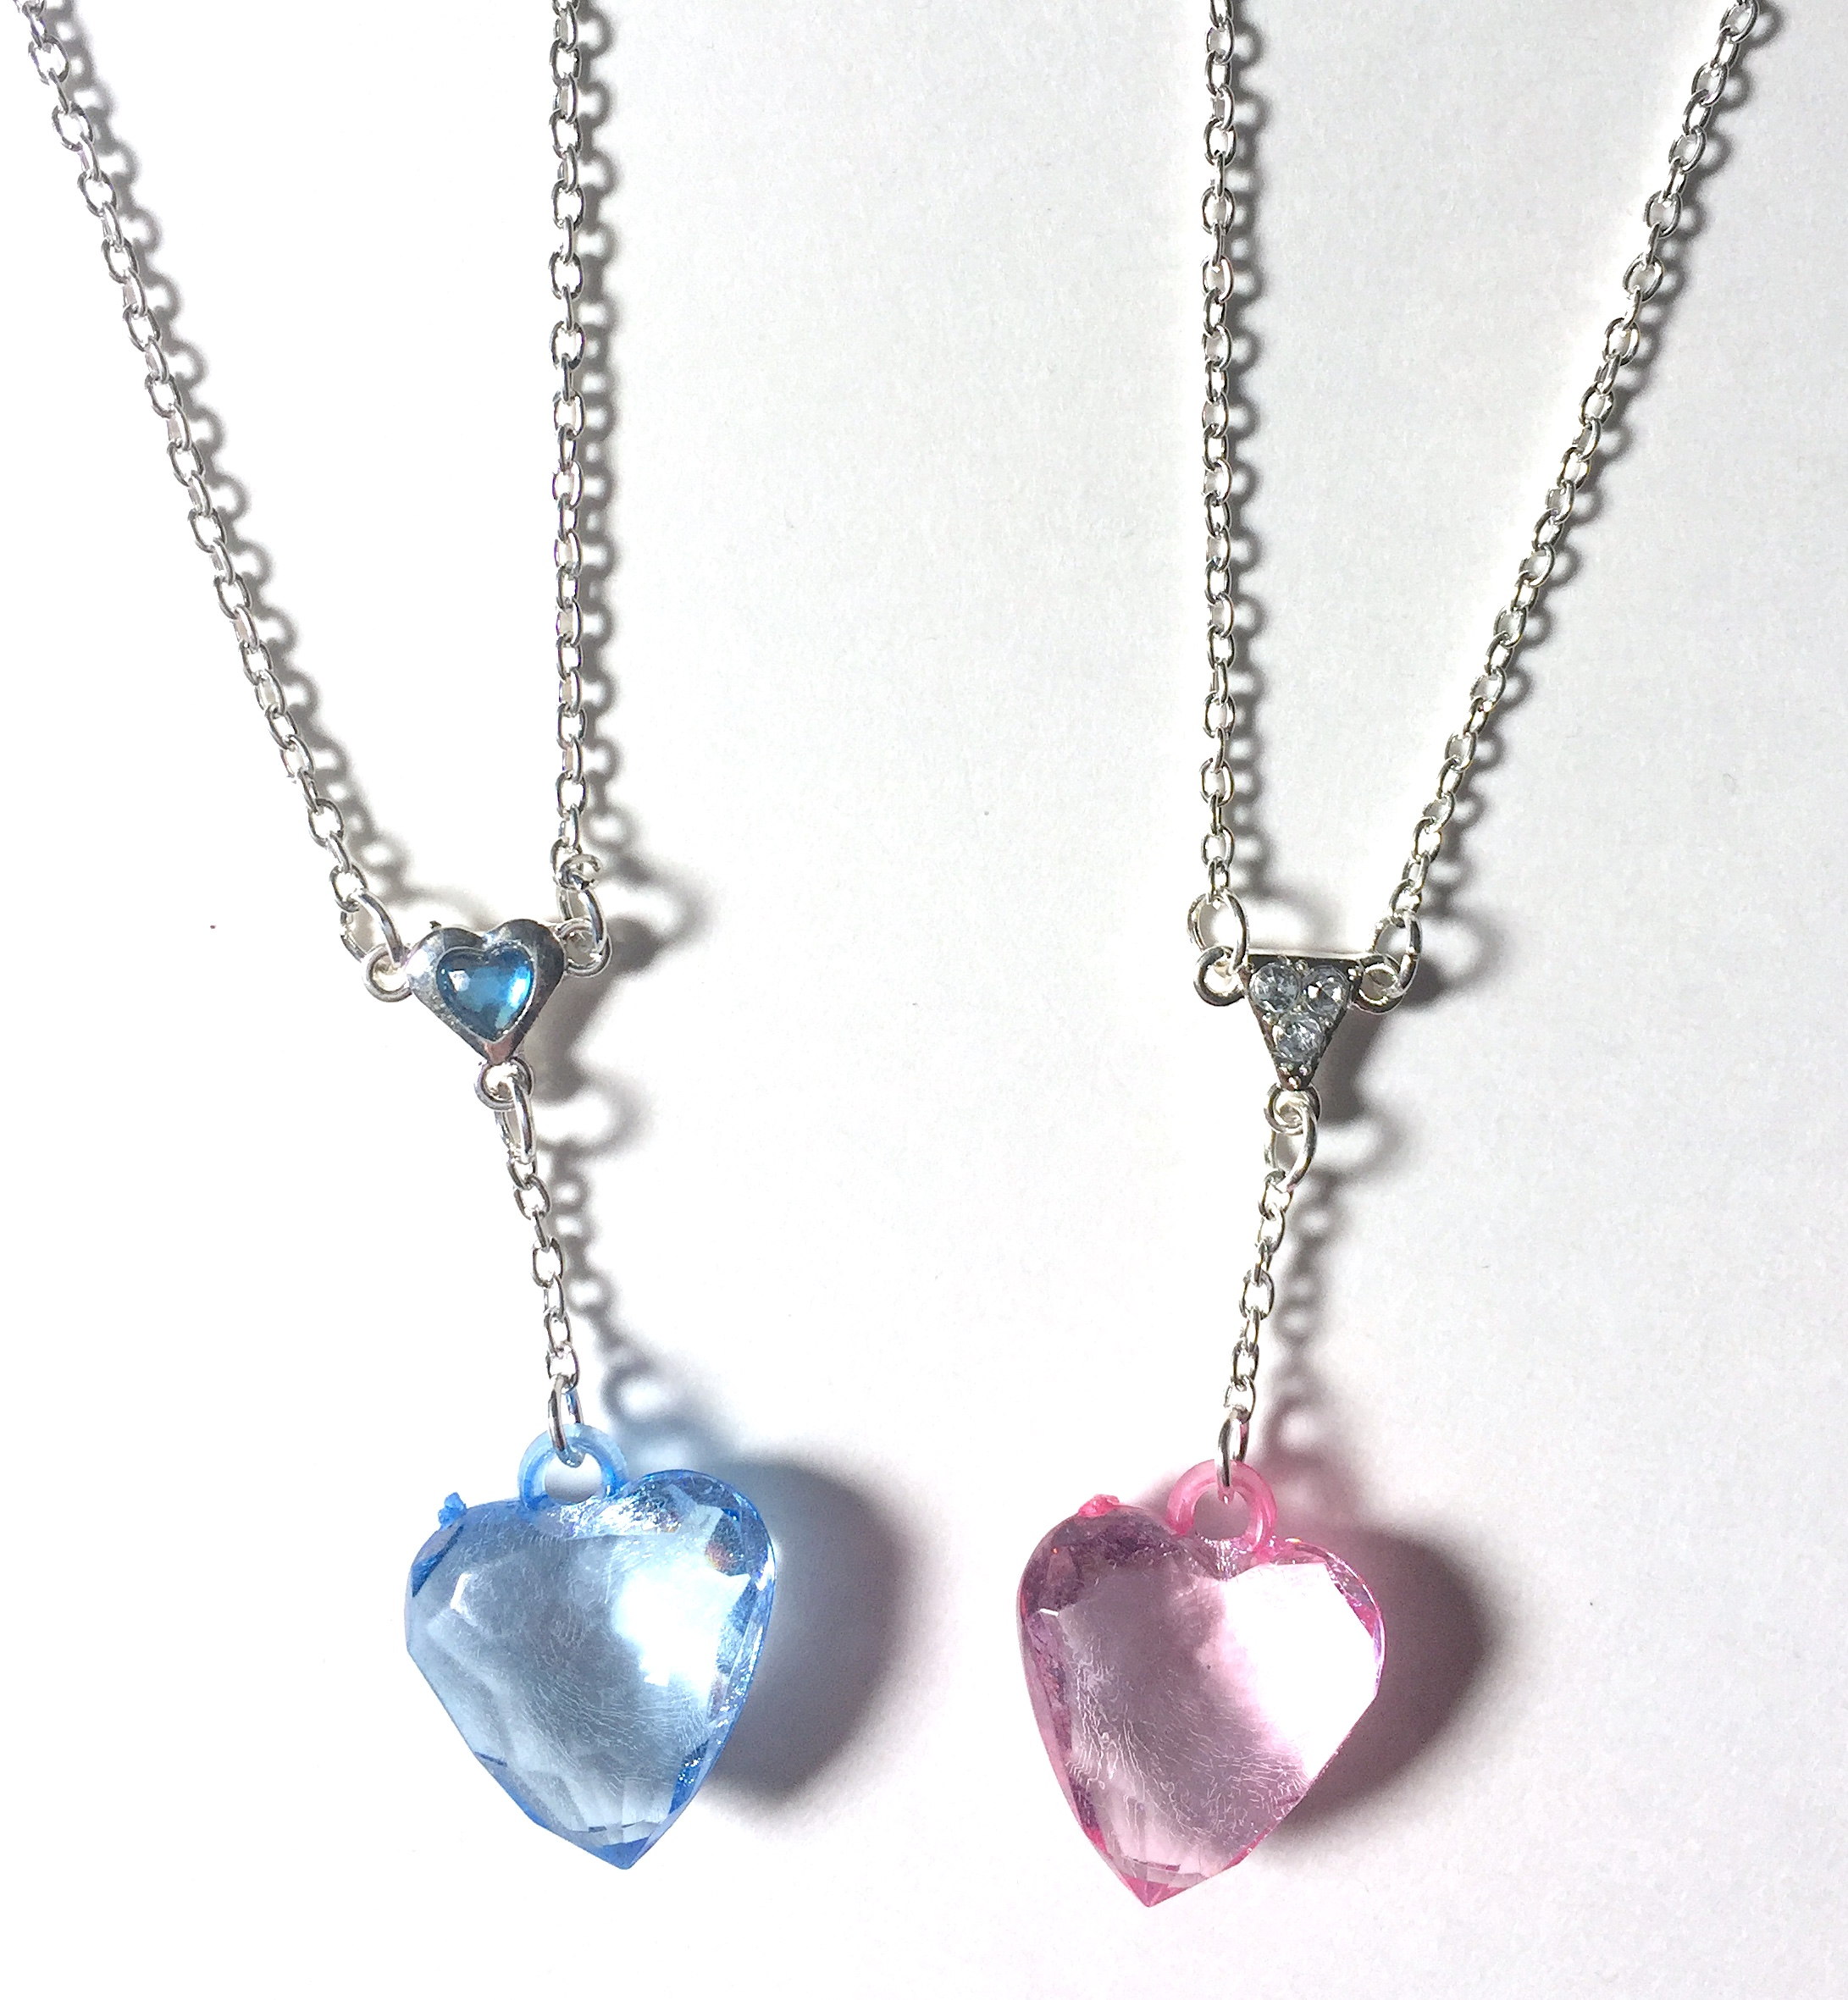 Faceted Heart Necklaces